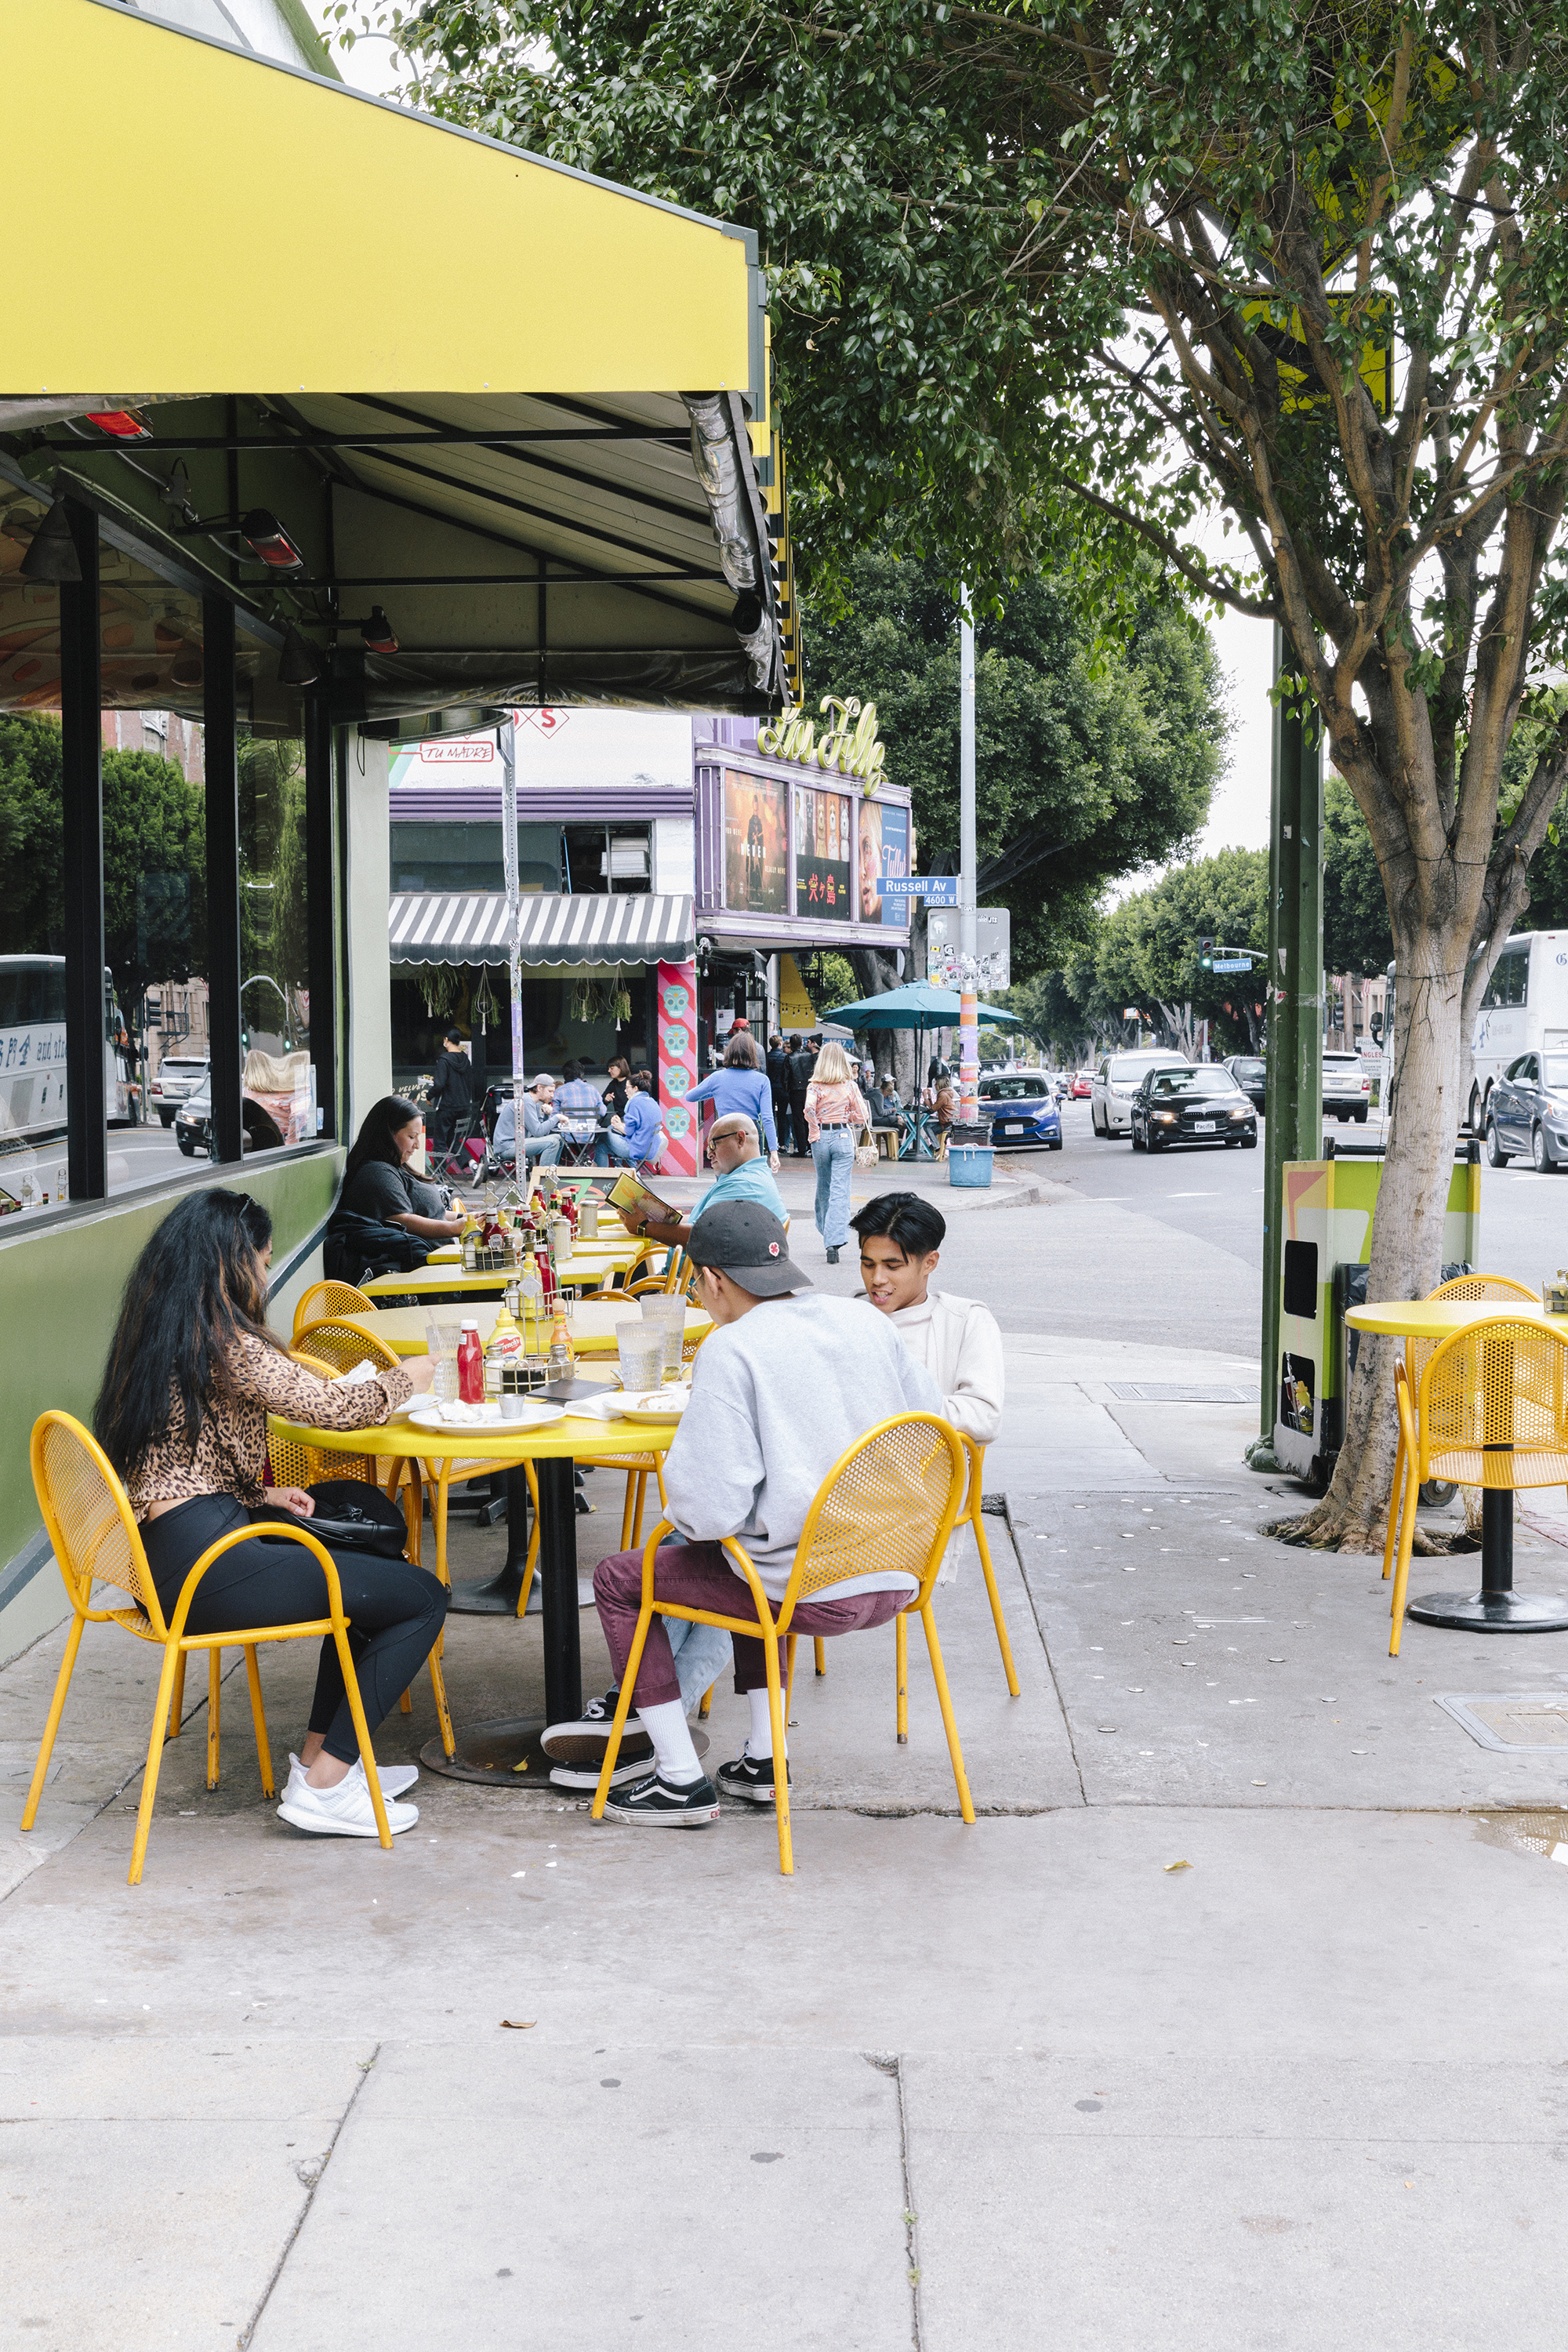 Young people sitting in yellow metal chairs dine on a sidewalk lined with trees. In the background, a vintage theater with green neon sign that reads in cursive print Los Feliz.